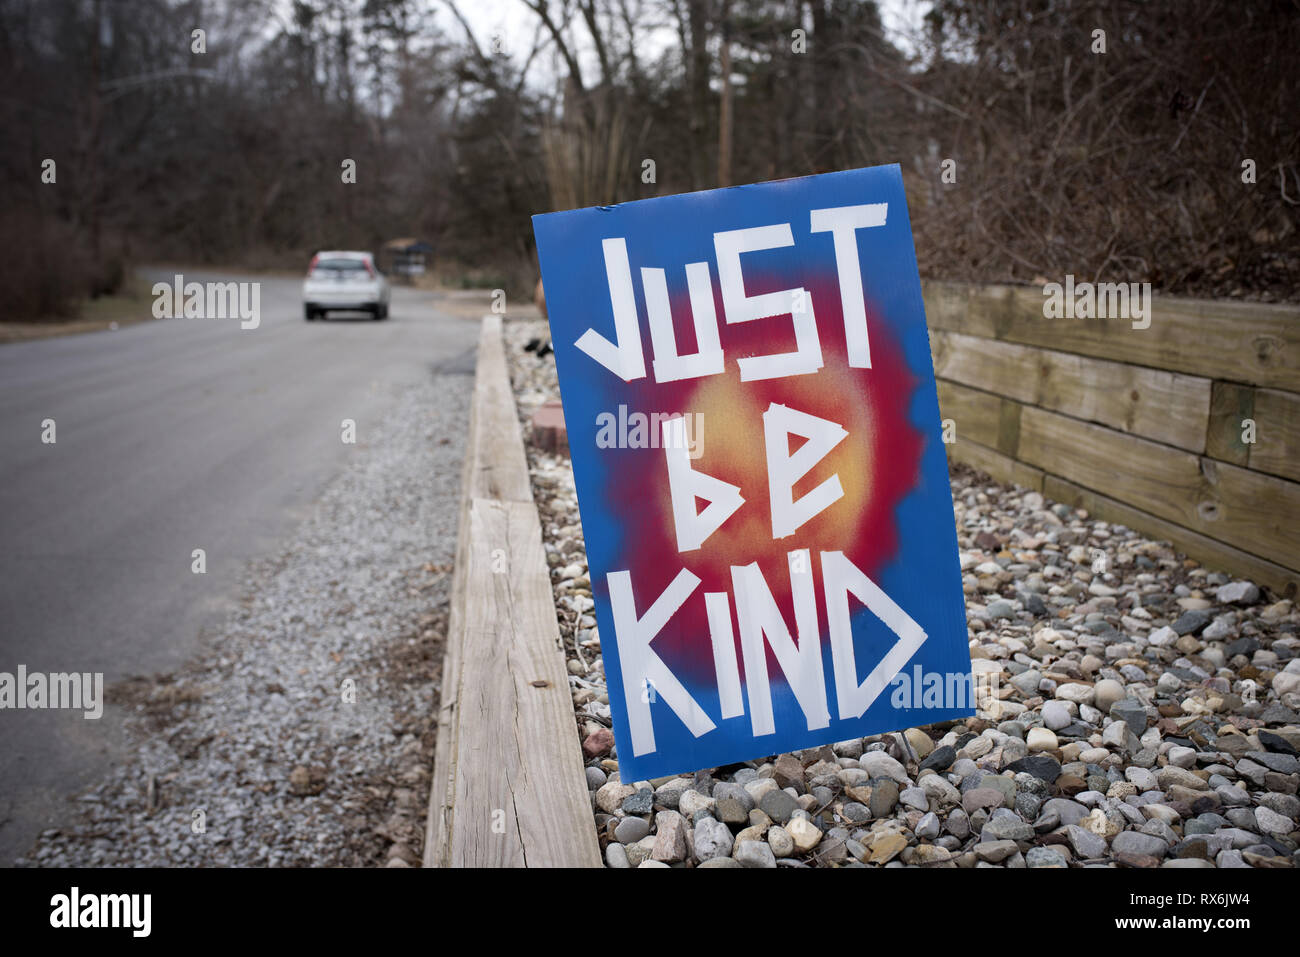 Ogden Dunes, IN, USA. 2nd Mar, 2019. A hand-painted 'Just Be Kind' sign is posted along a road in this small lakeshore community. It's a simple message that started in Central Indiana and is now spreading all over the world.The 'just be kind' group started back in 2015 as an after-school club for high school students. But when summertime rolled around, the students wanted to continue giving back.The students began making the items and then selling them for a profit, to give back to different area organizations. Credit: Robin Rayne/ZUMA Wire/Alamy Live News - Stock Image